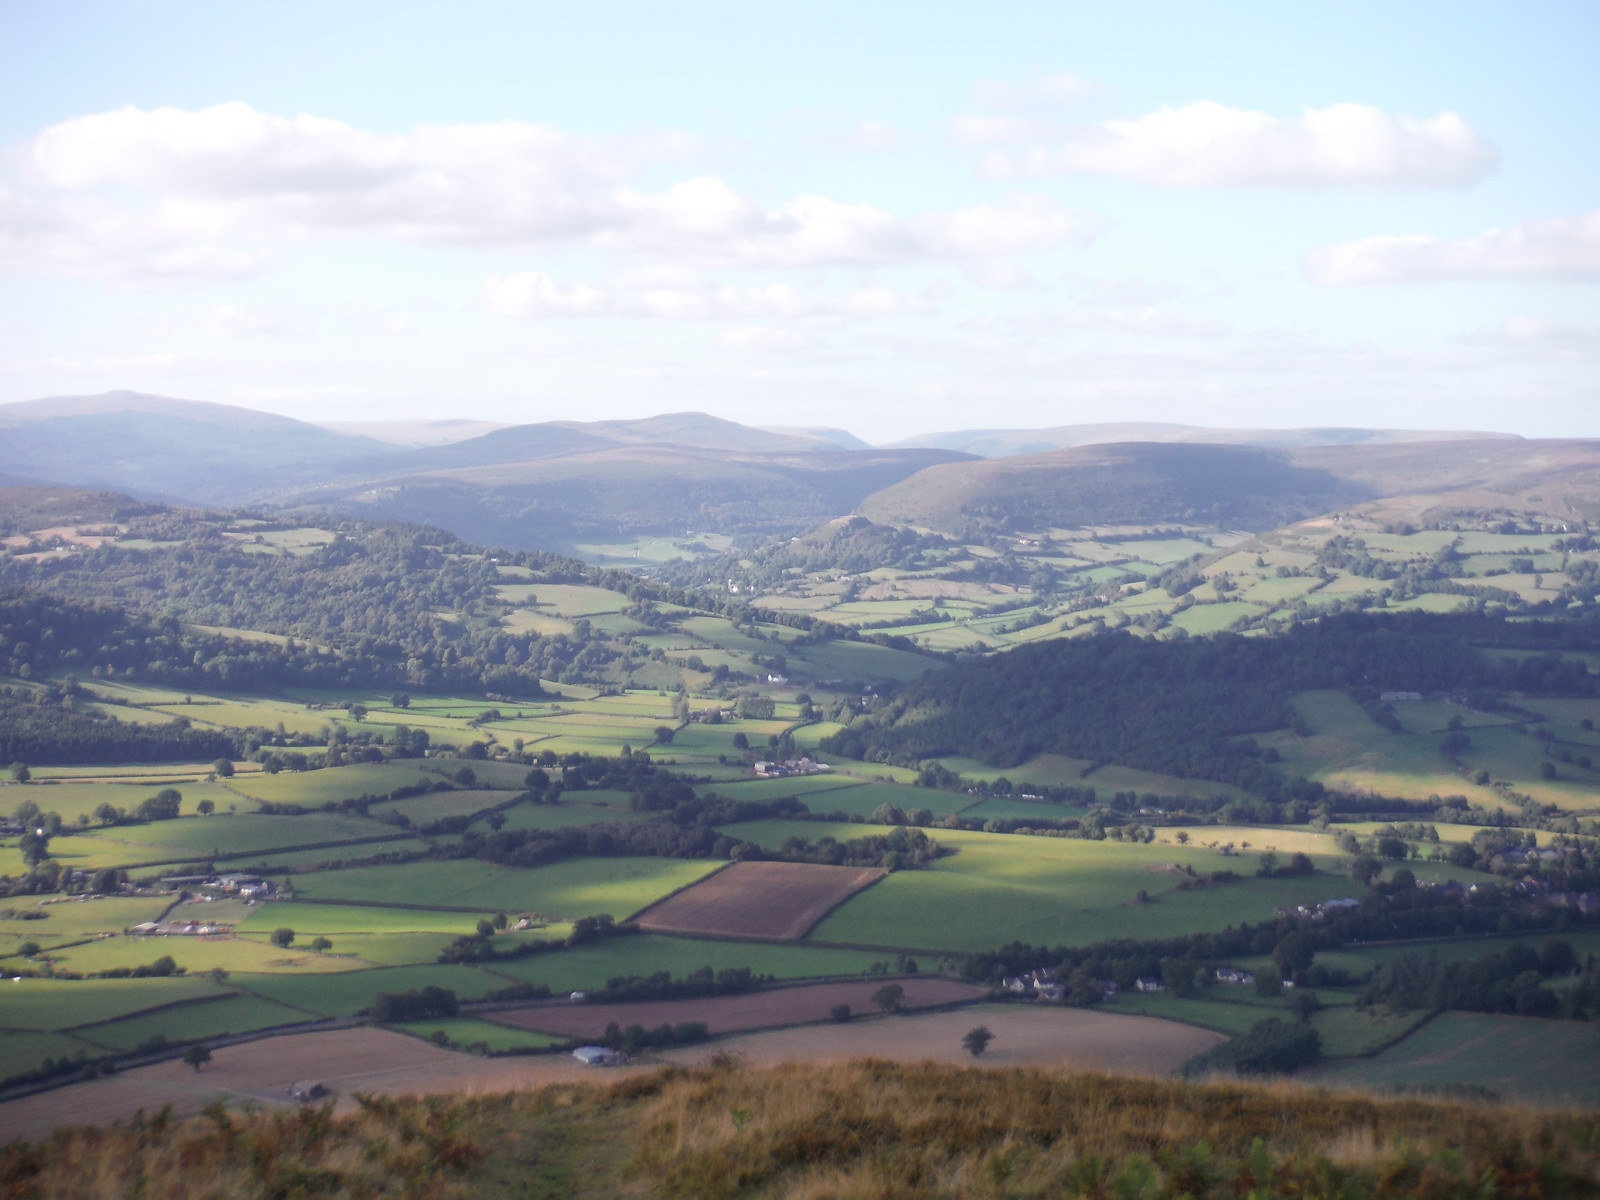 Cwmyoy Crag and The Black Mountains Ranges, from the ridge of The Skirrid SWC Walk 347 - Llanvihangel Crucorney Circular (via Bryn Arw and The Skirrid)